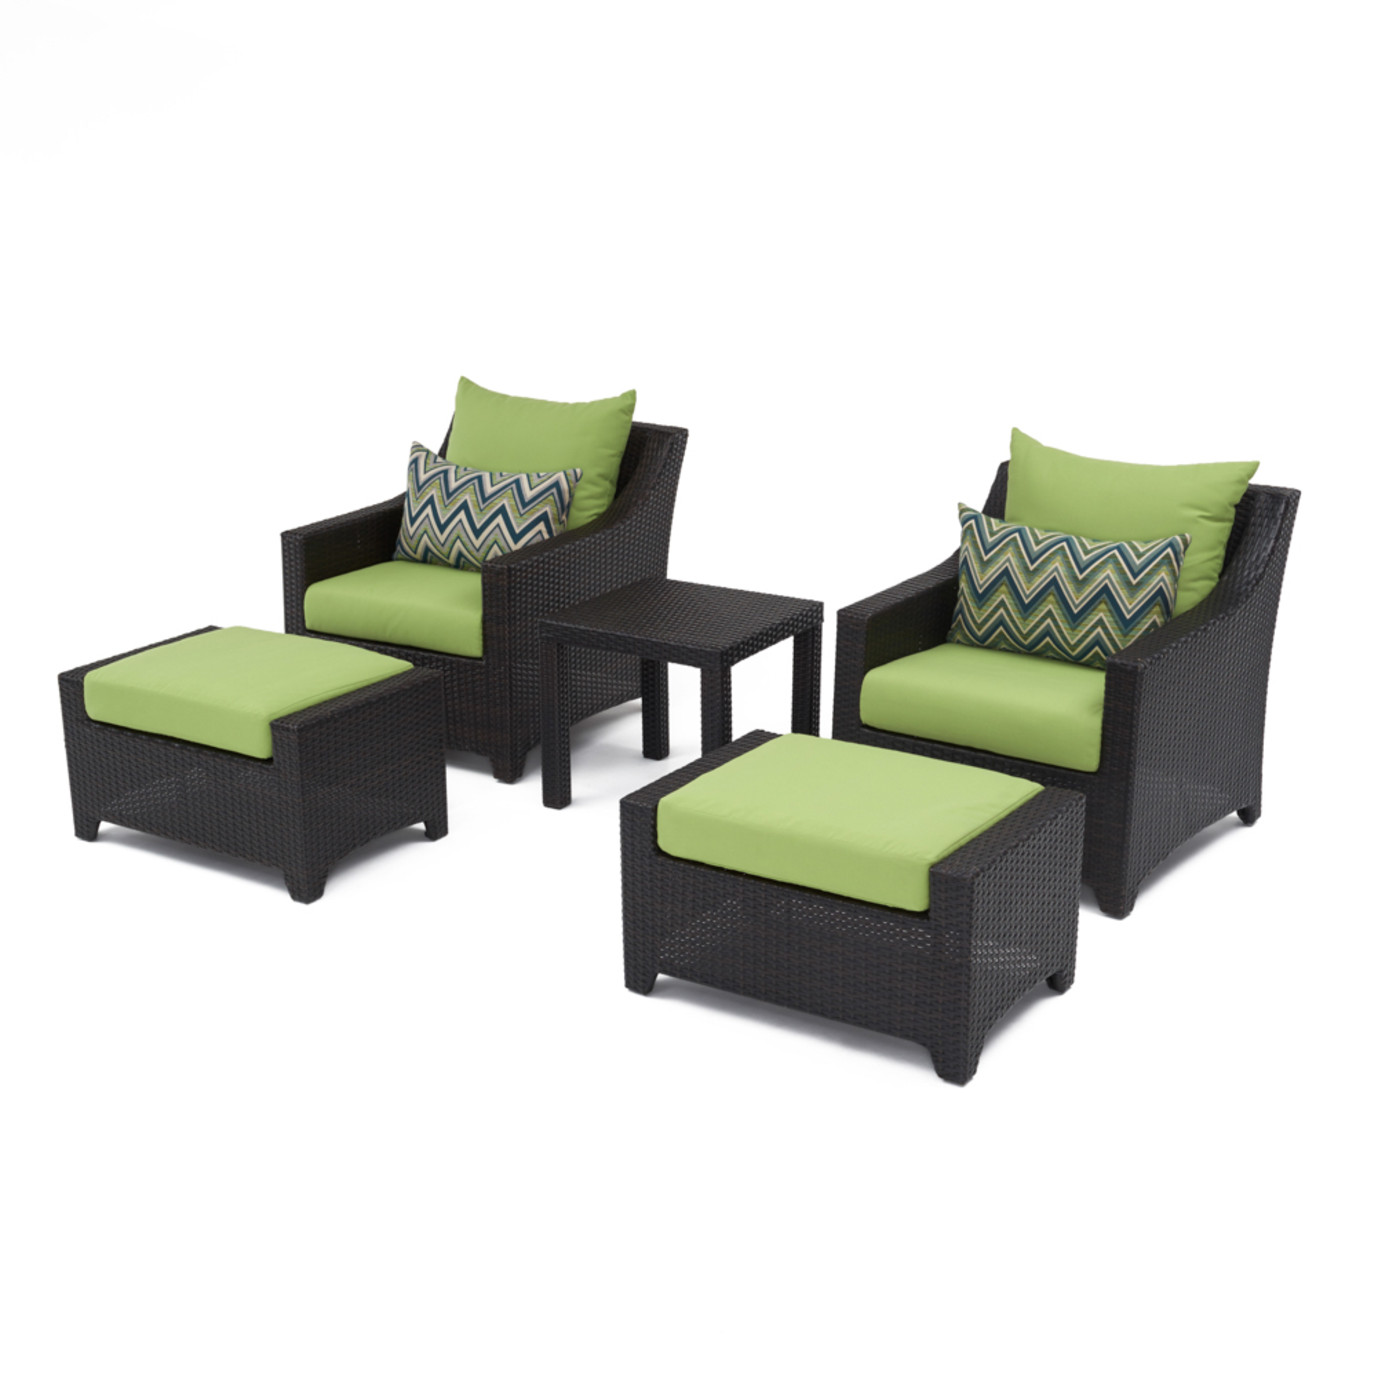 Deco™ 5 Piece Club Chair and Ottoman Set - Ginkgo Green